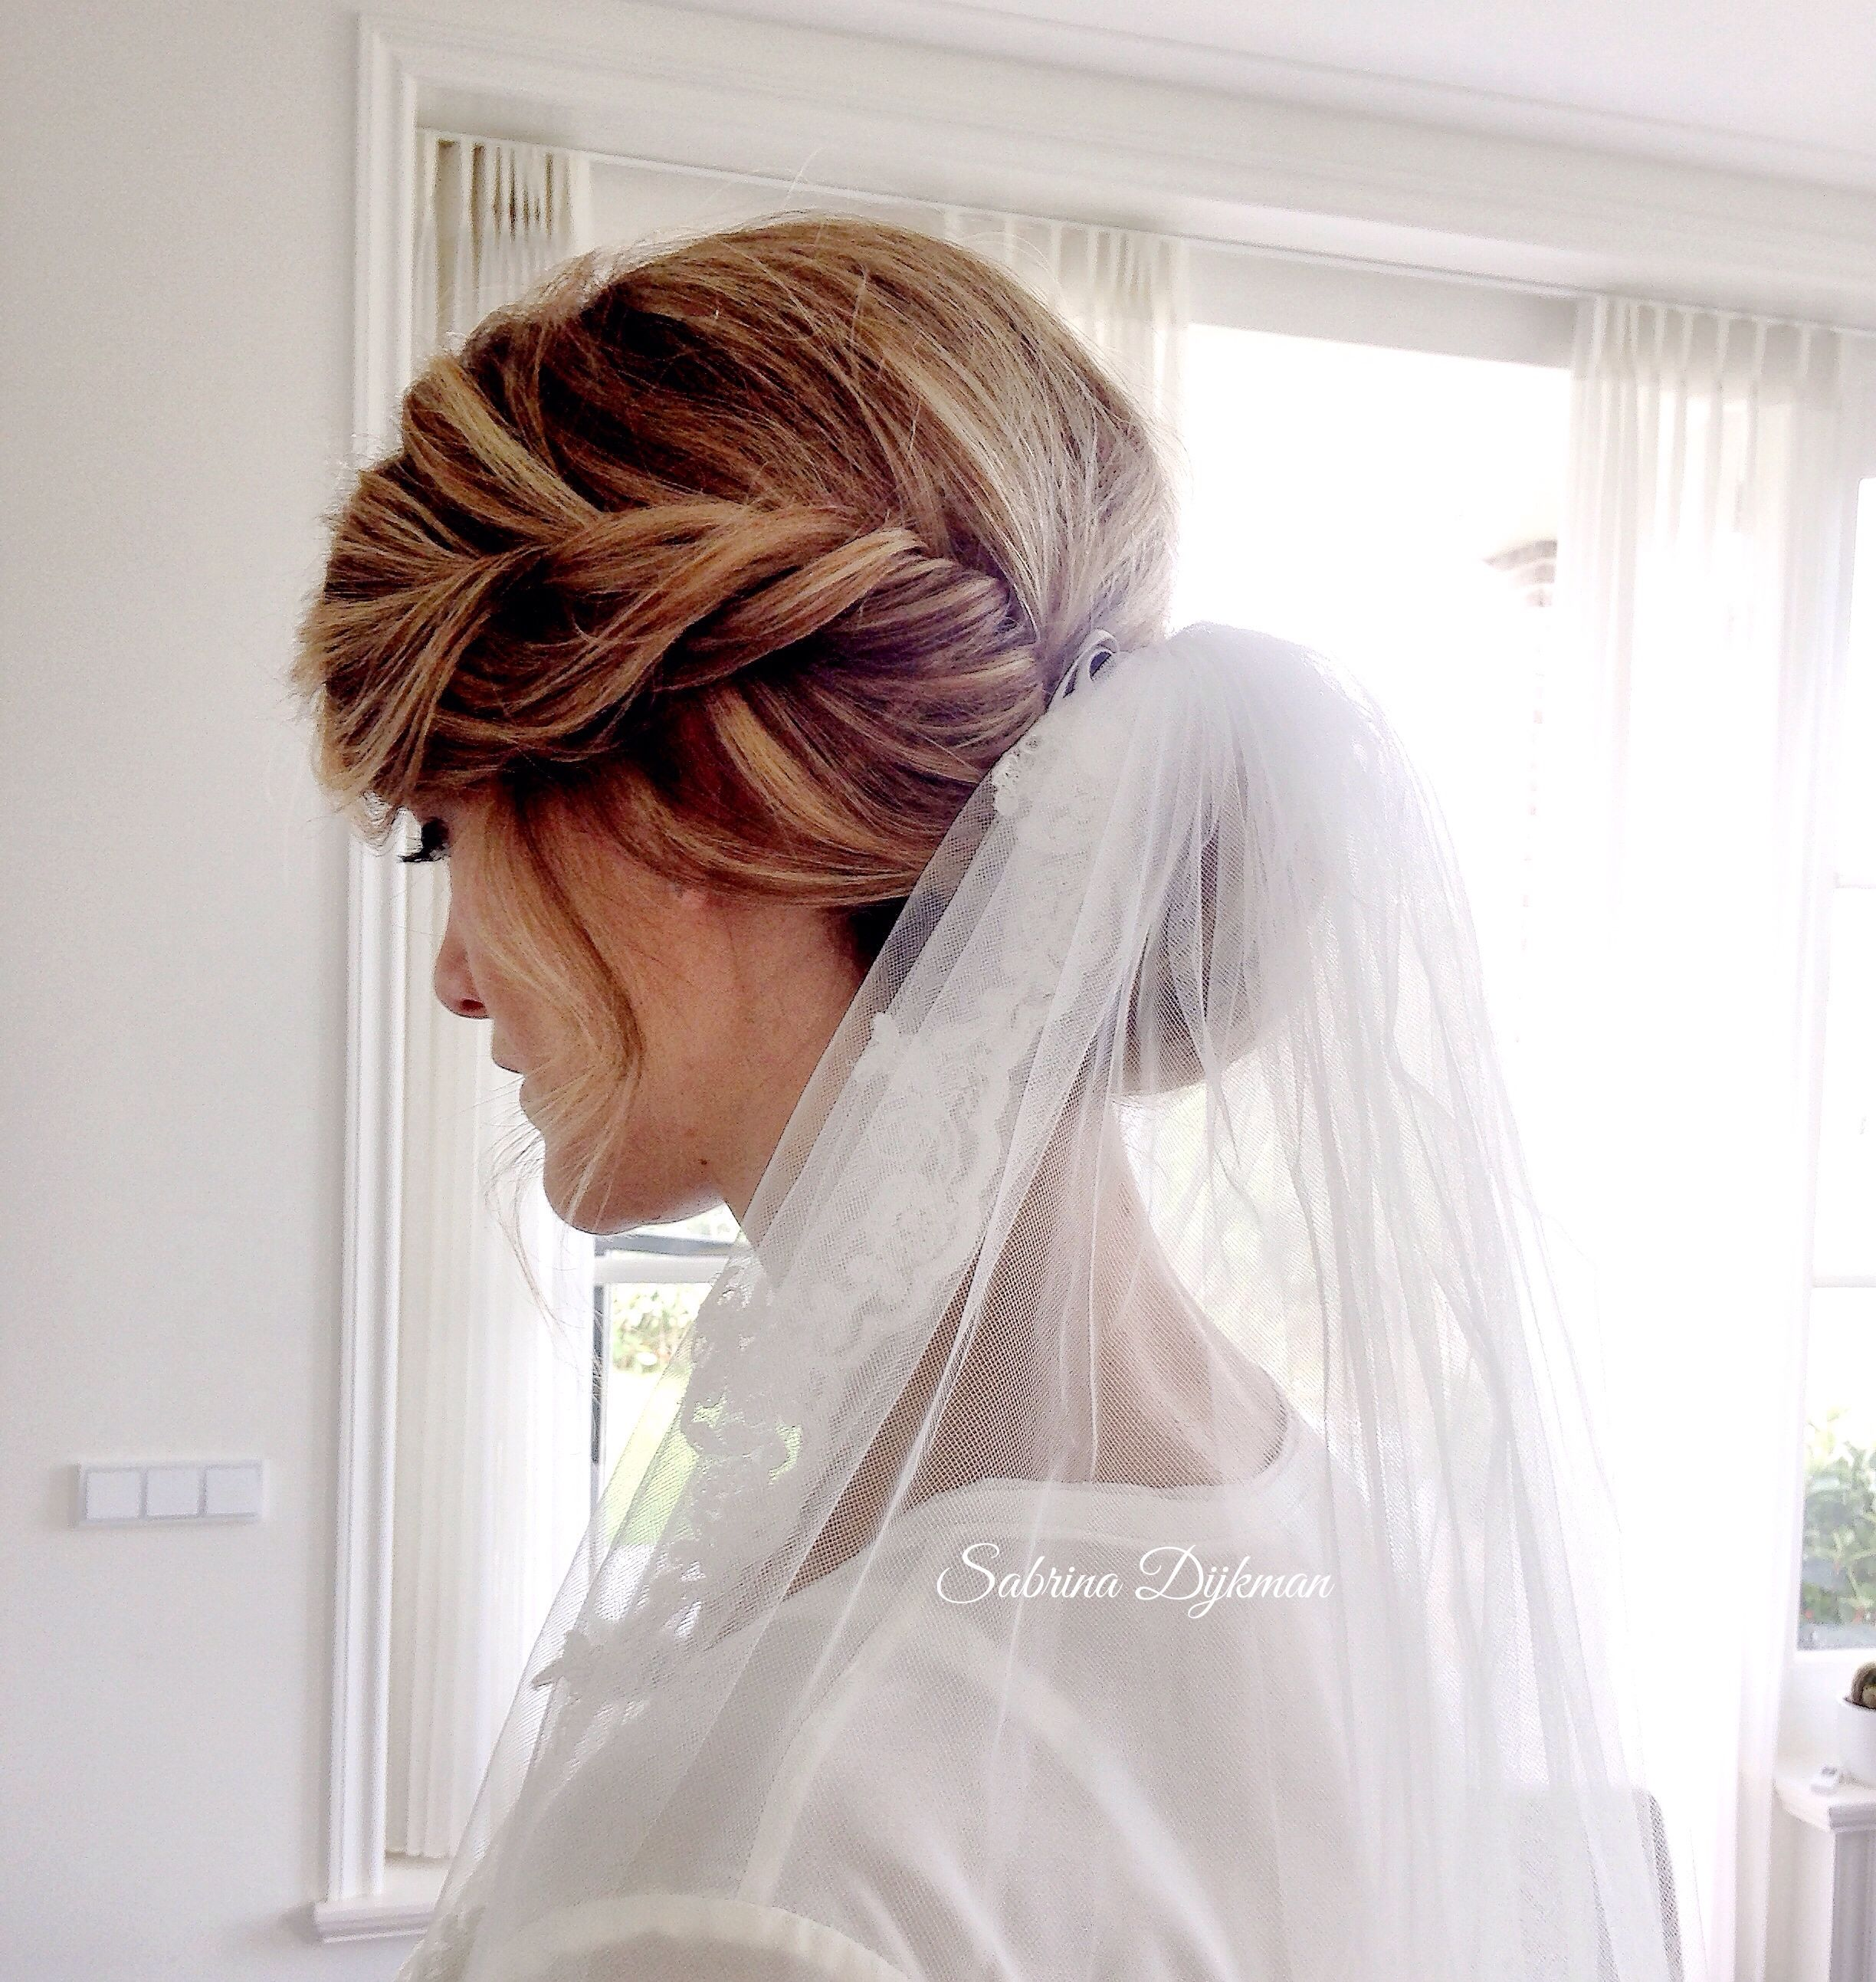 weddingupdo #weddinghair #updo #bridalhair | Bridal Hair & Make up ...